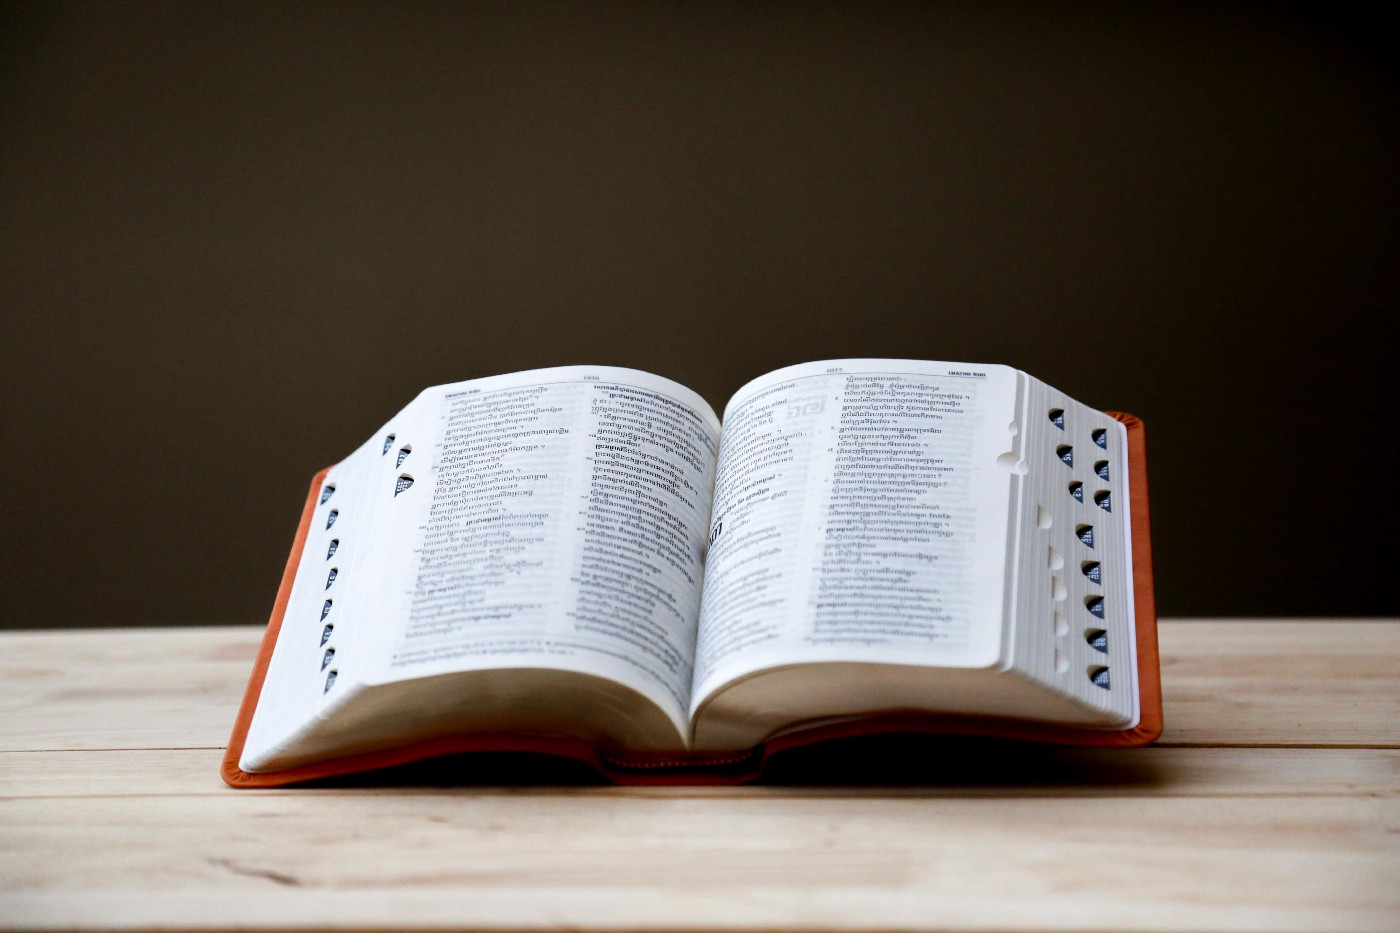 An open dictionary sits on a wooden table